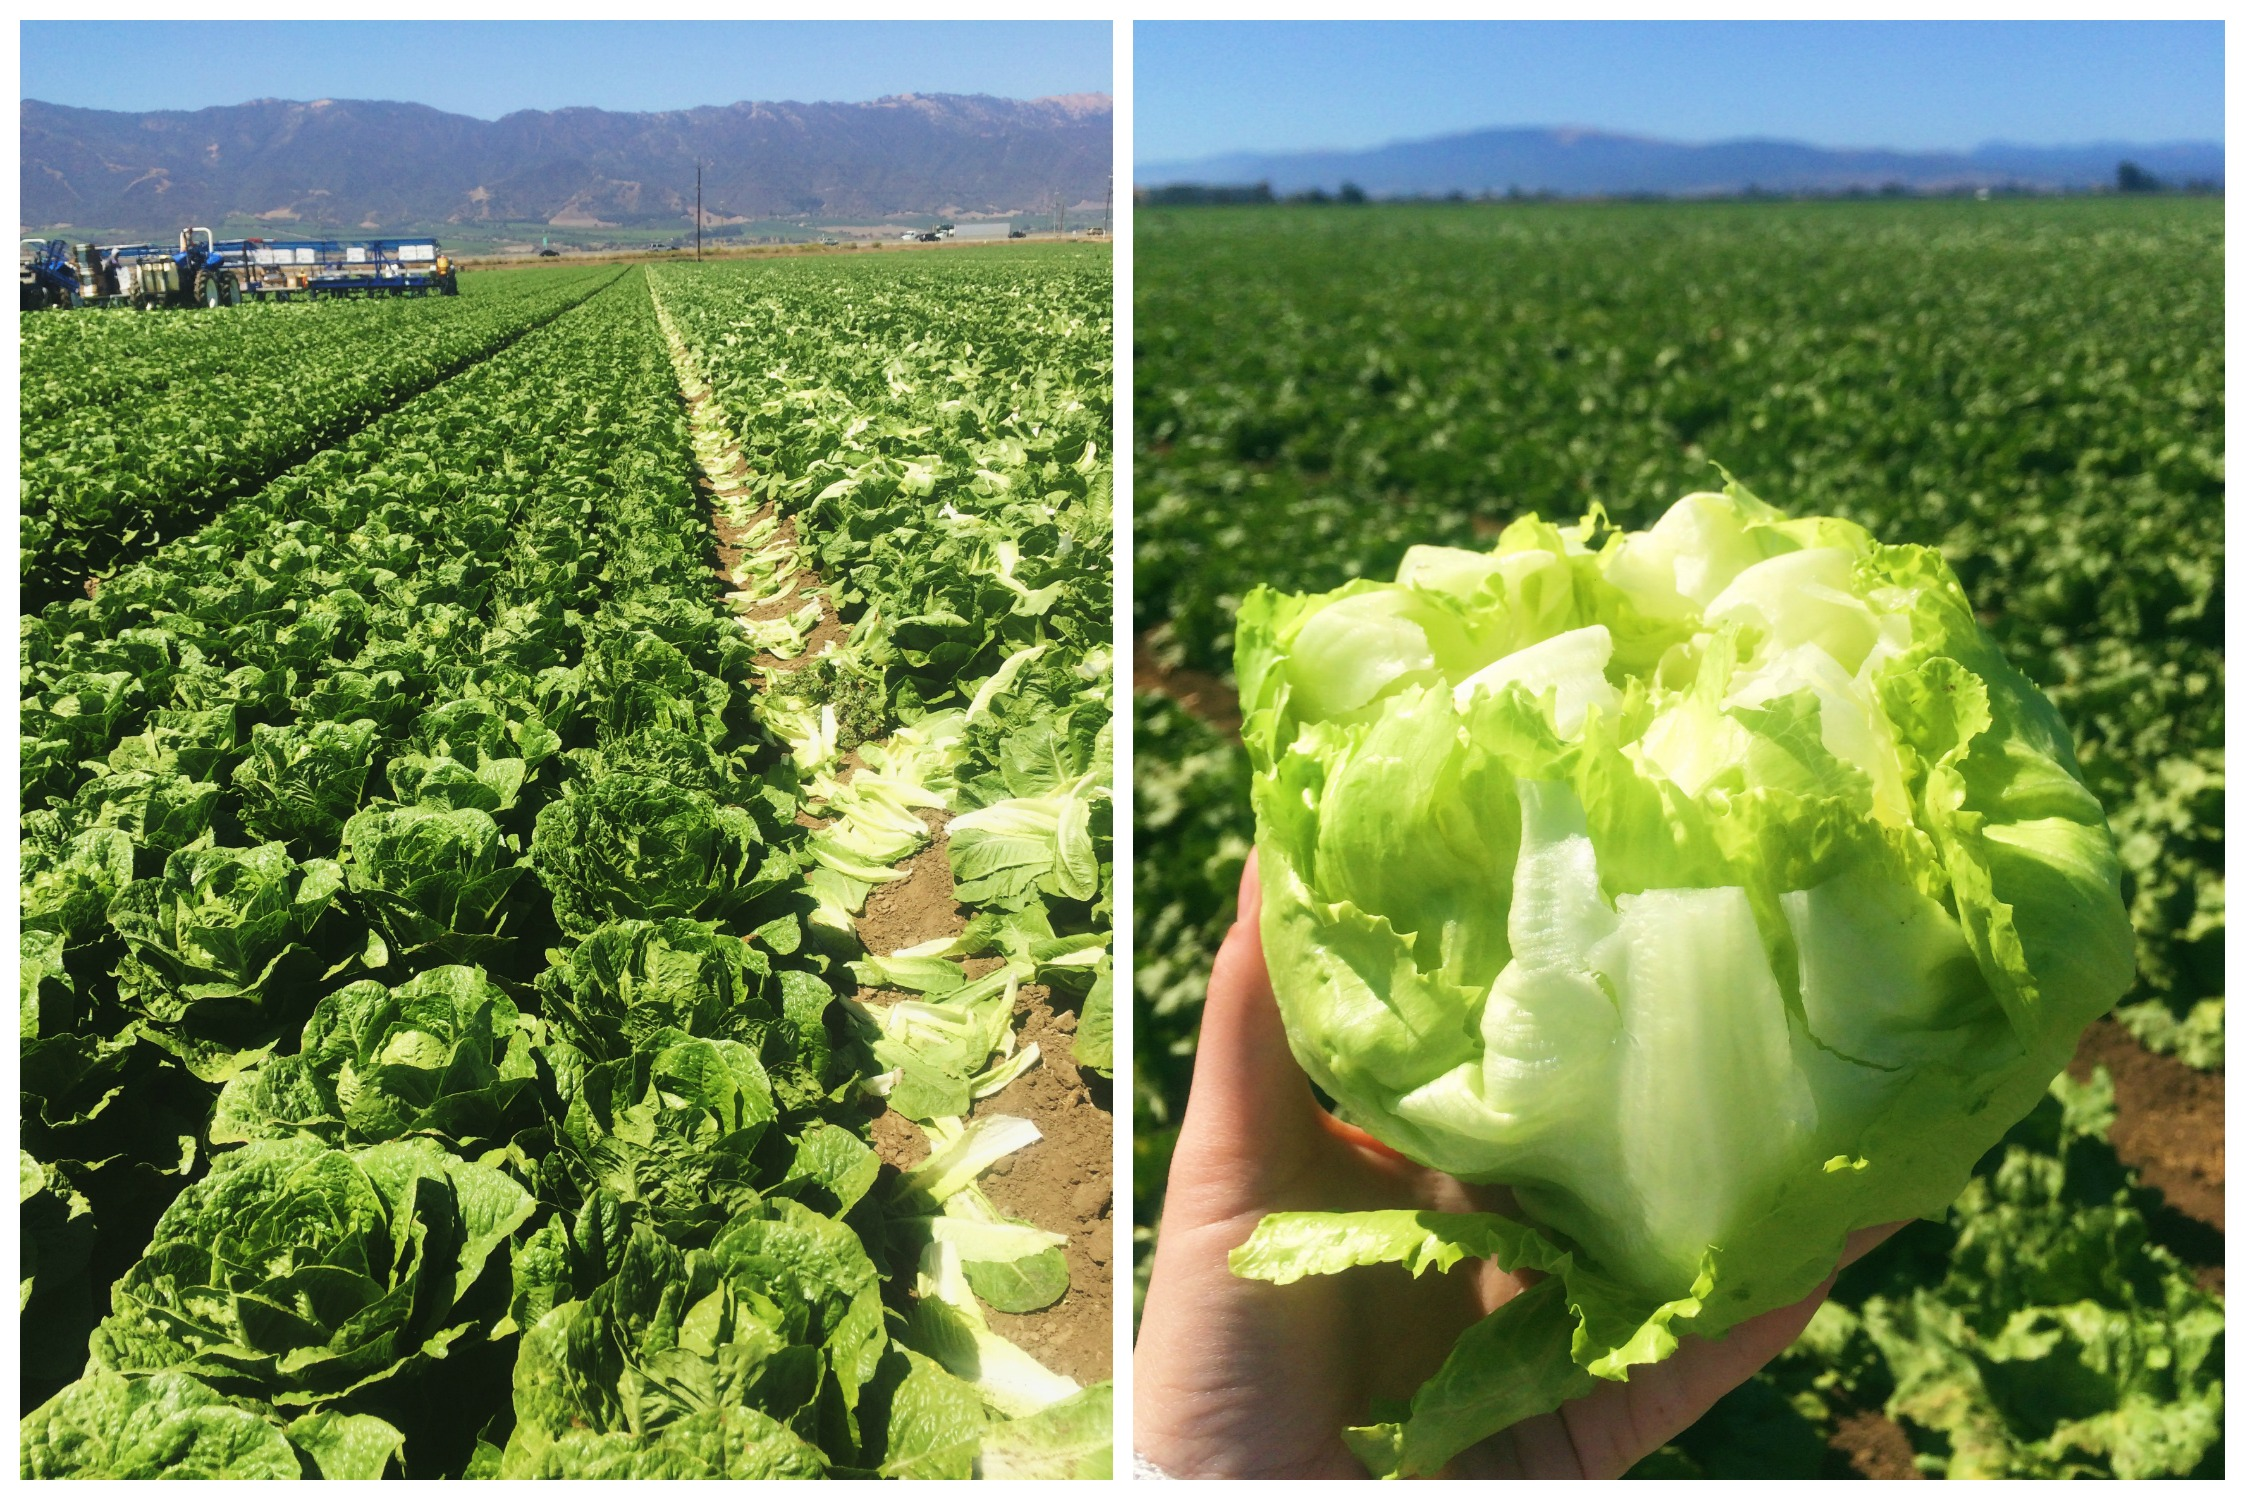 Lettuce Fields